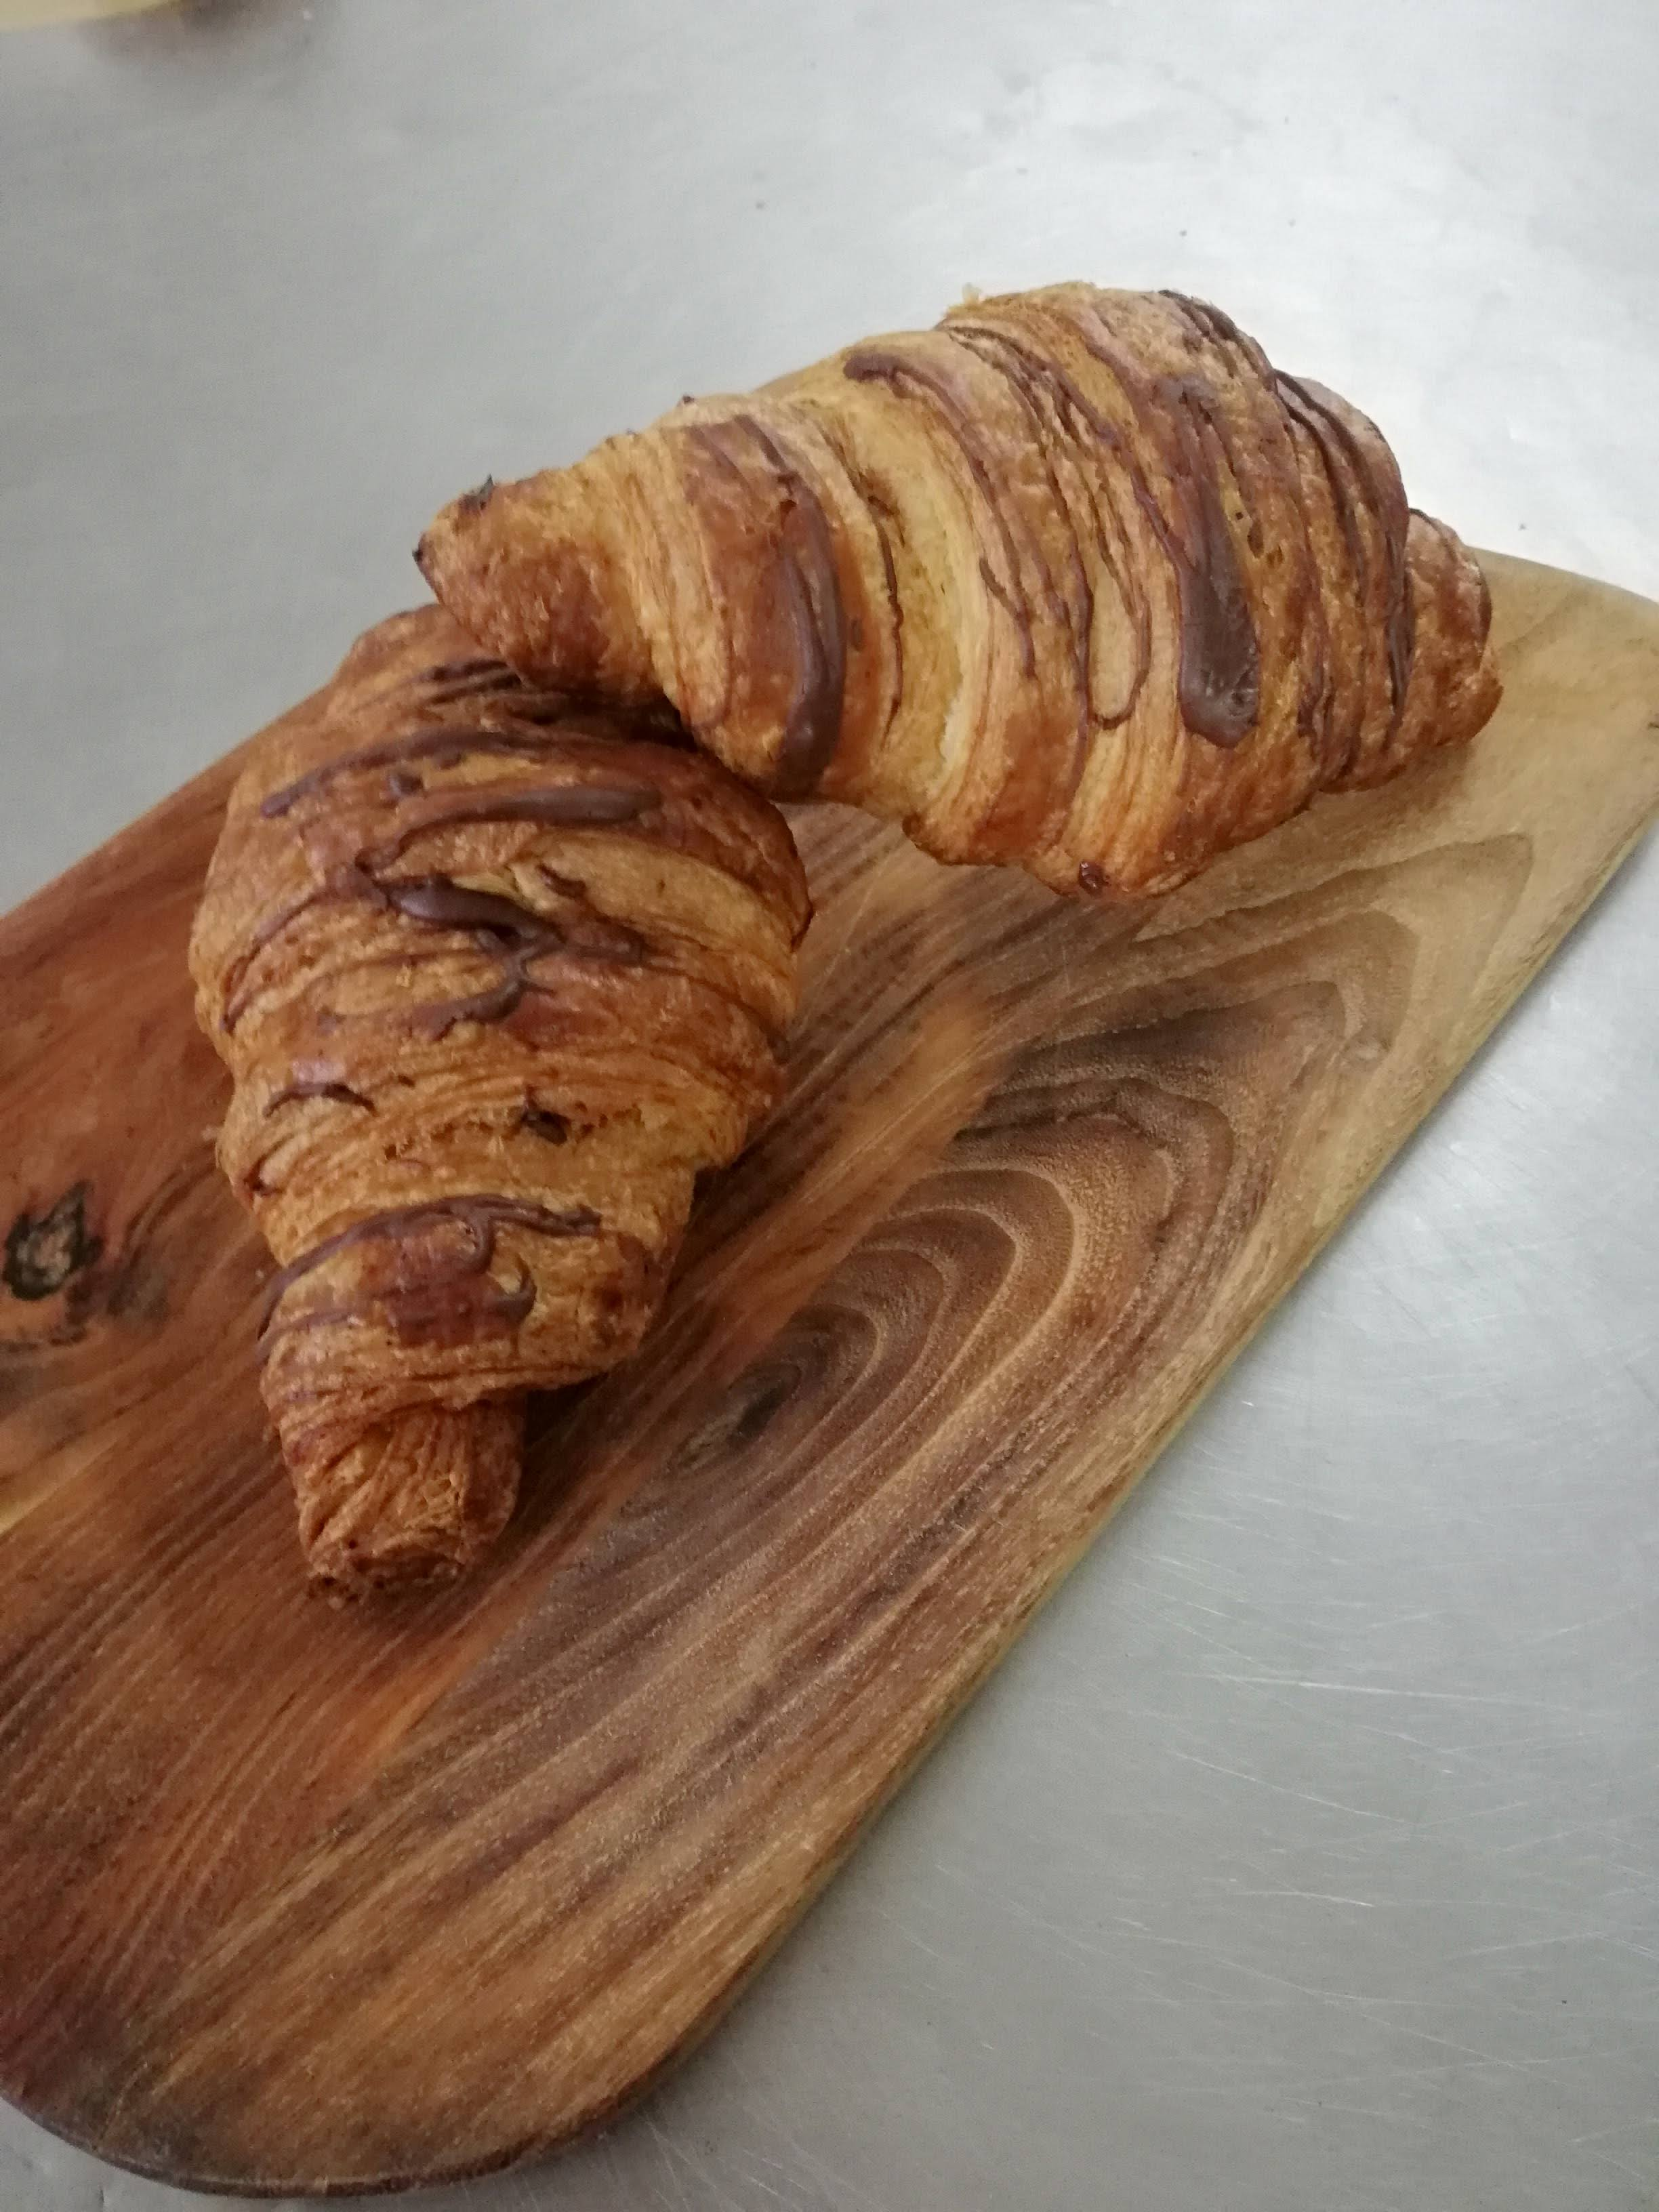 4 Filled Croissants